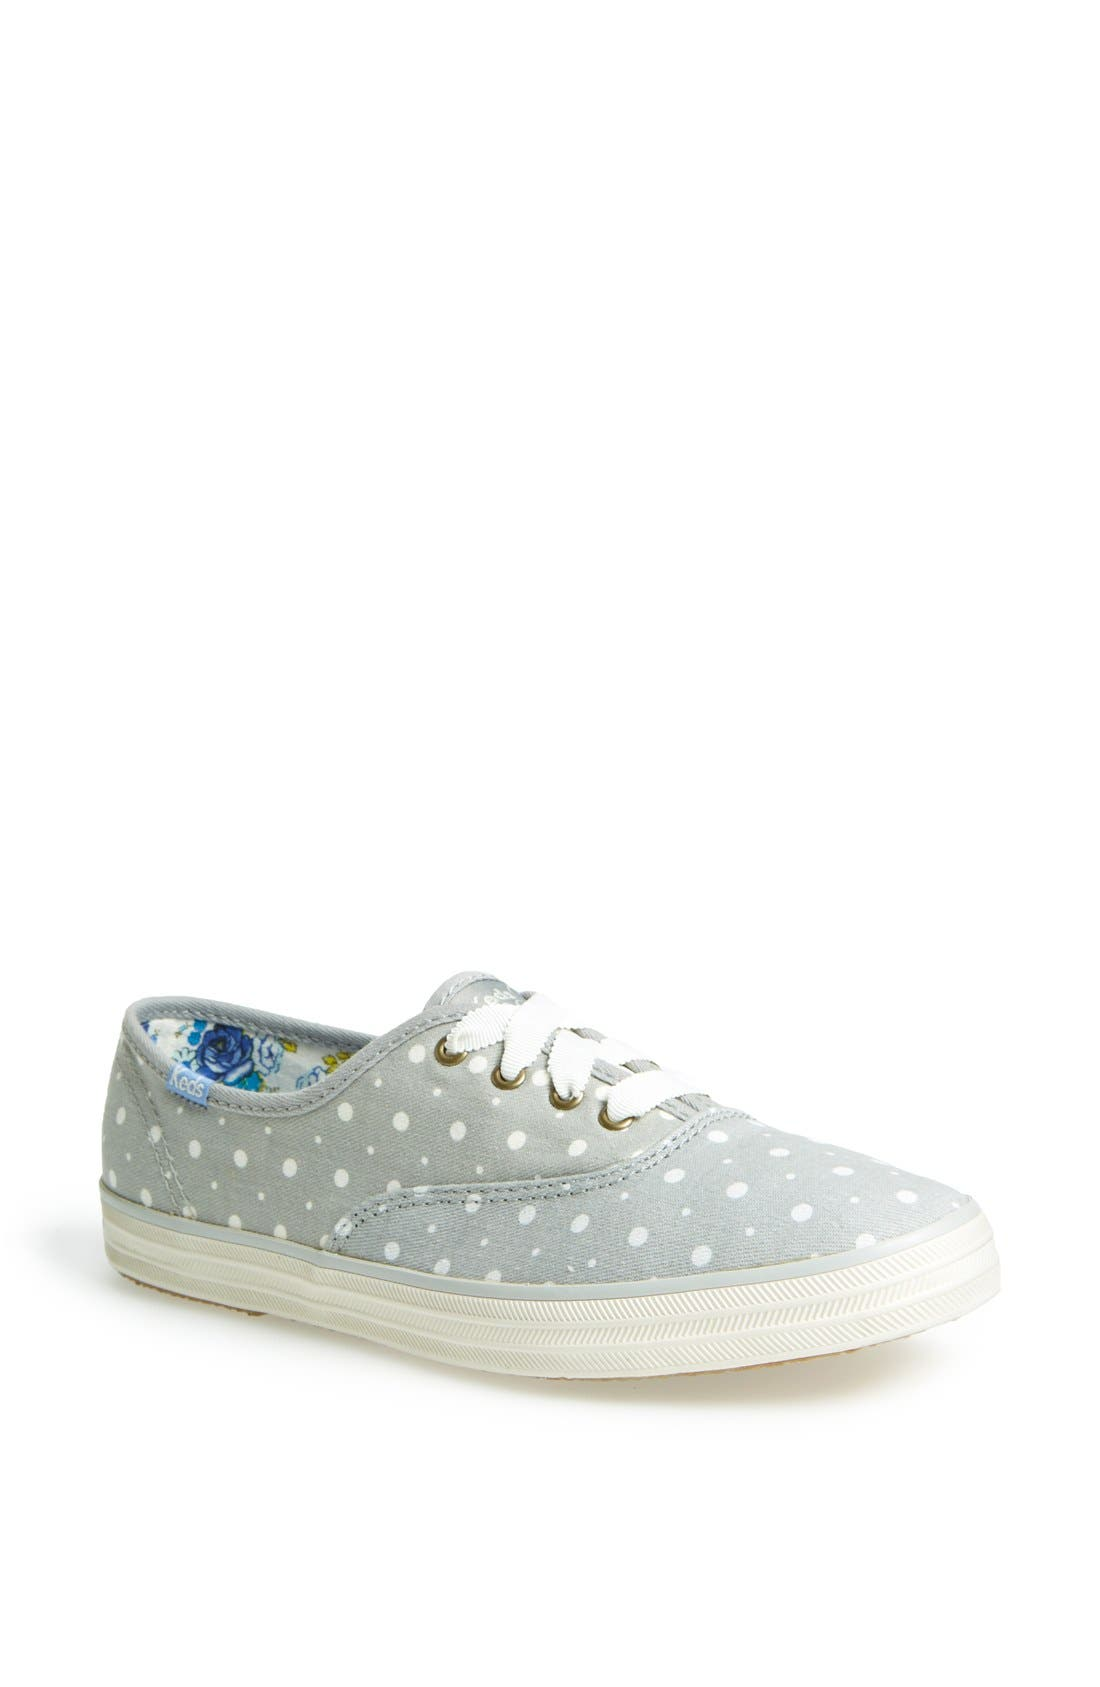 Main Image - Keds® Taylor Swift Polka Dot Sneaker (Women)